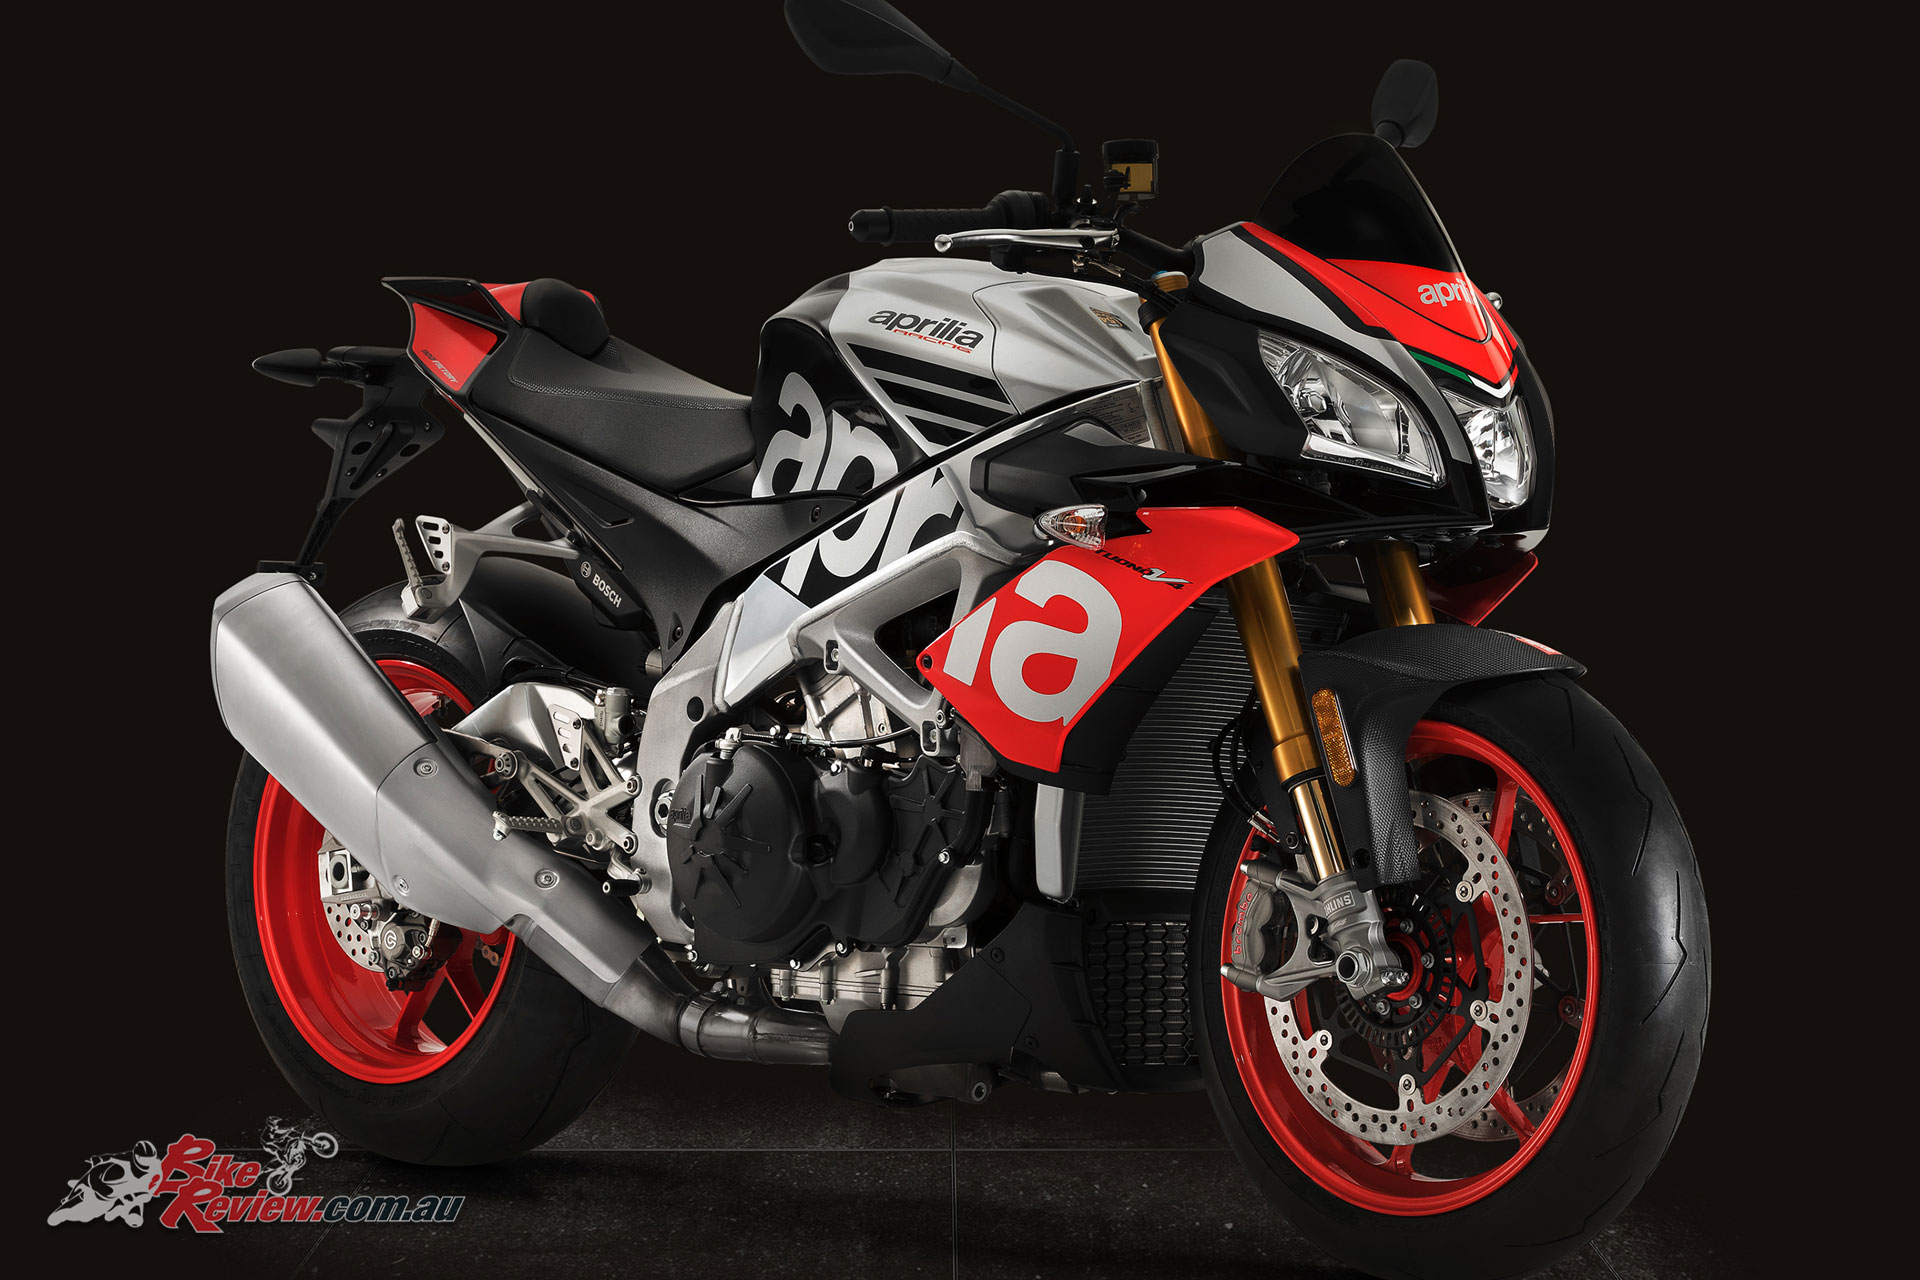 The 2018 Tuono V4 1100 Factory also includes a new Superpole colour scheme